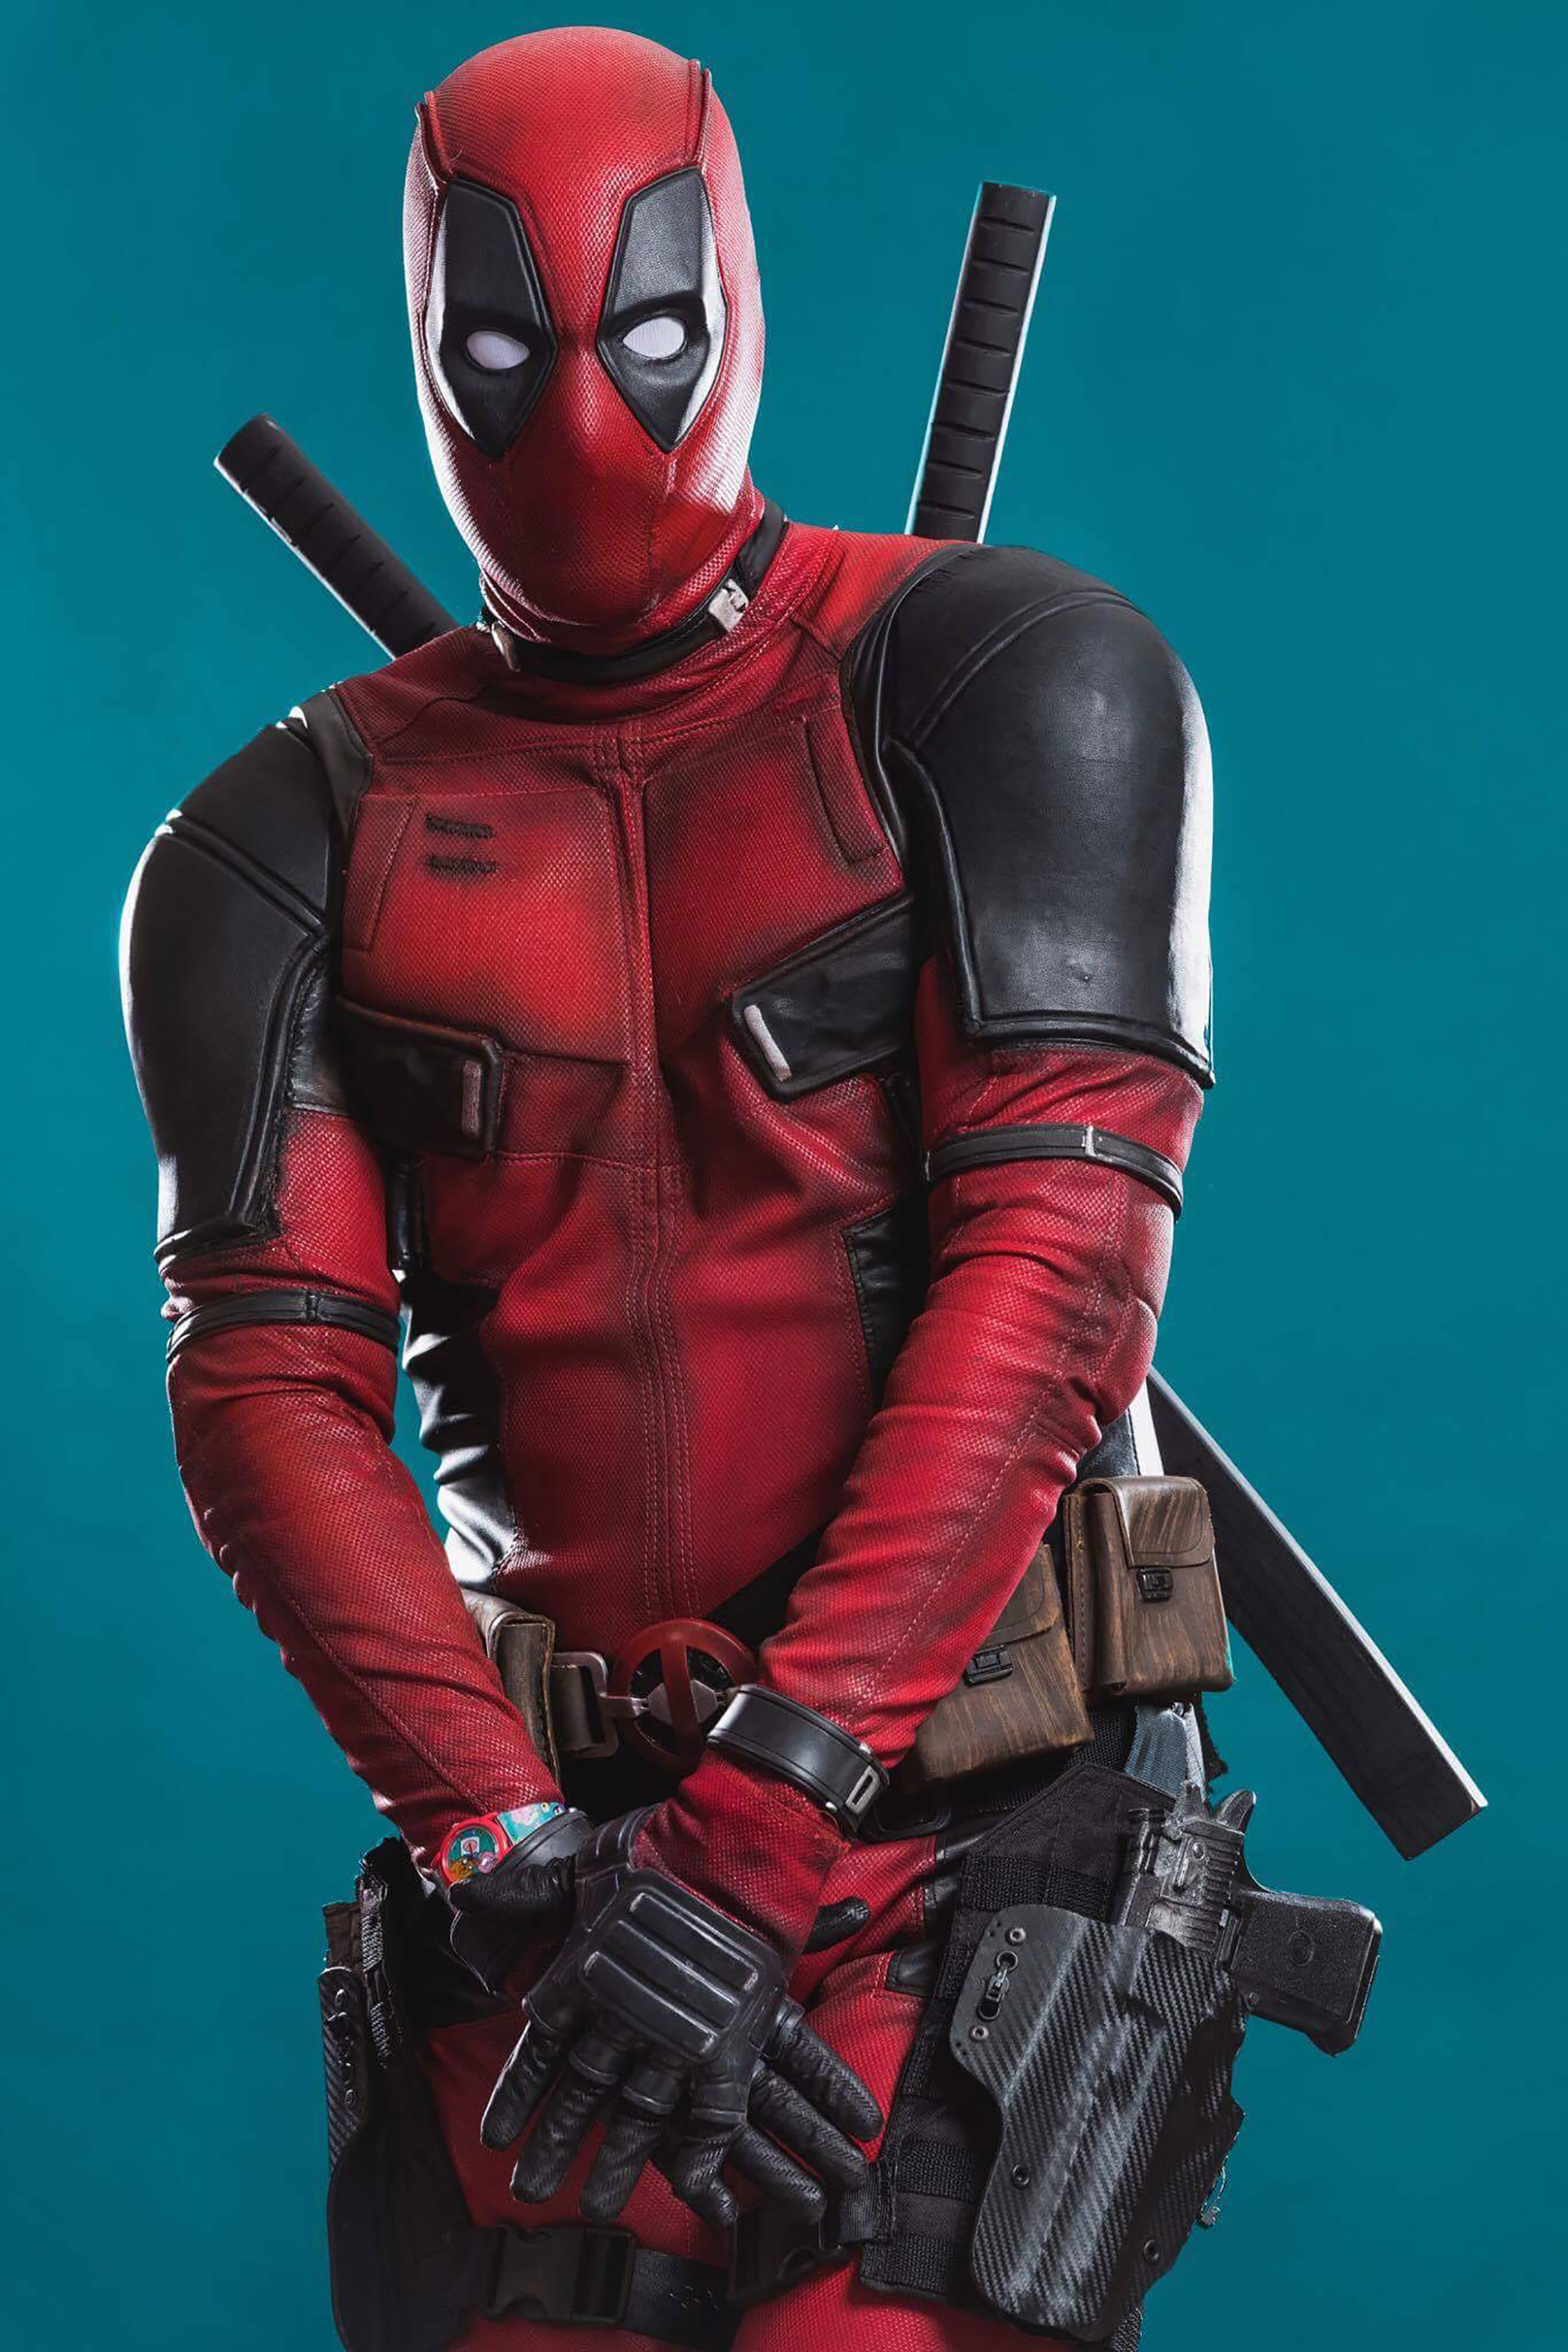 Deadpool cosplay by Mark Knight Rises | Photo by: David Love